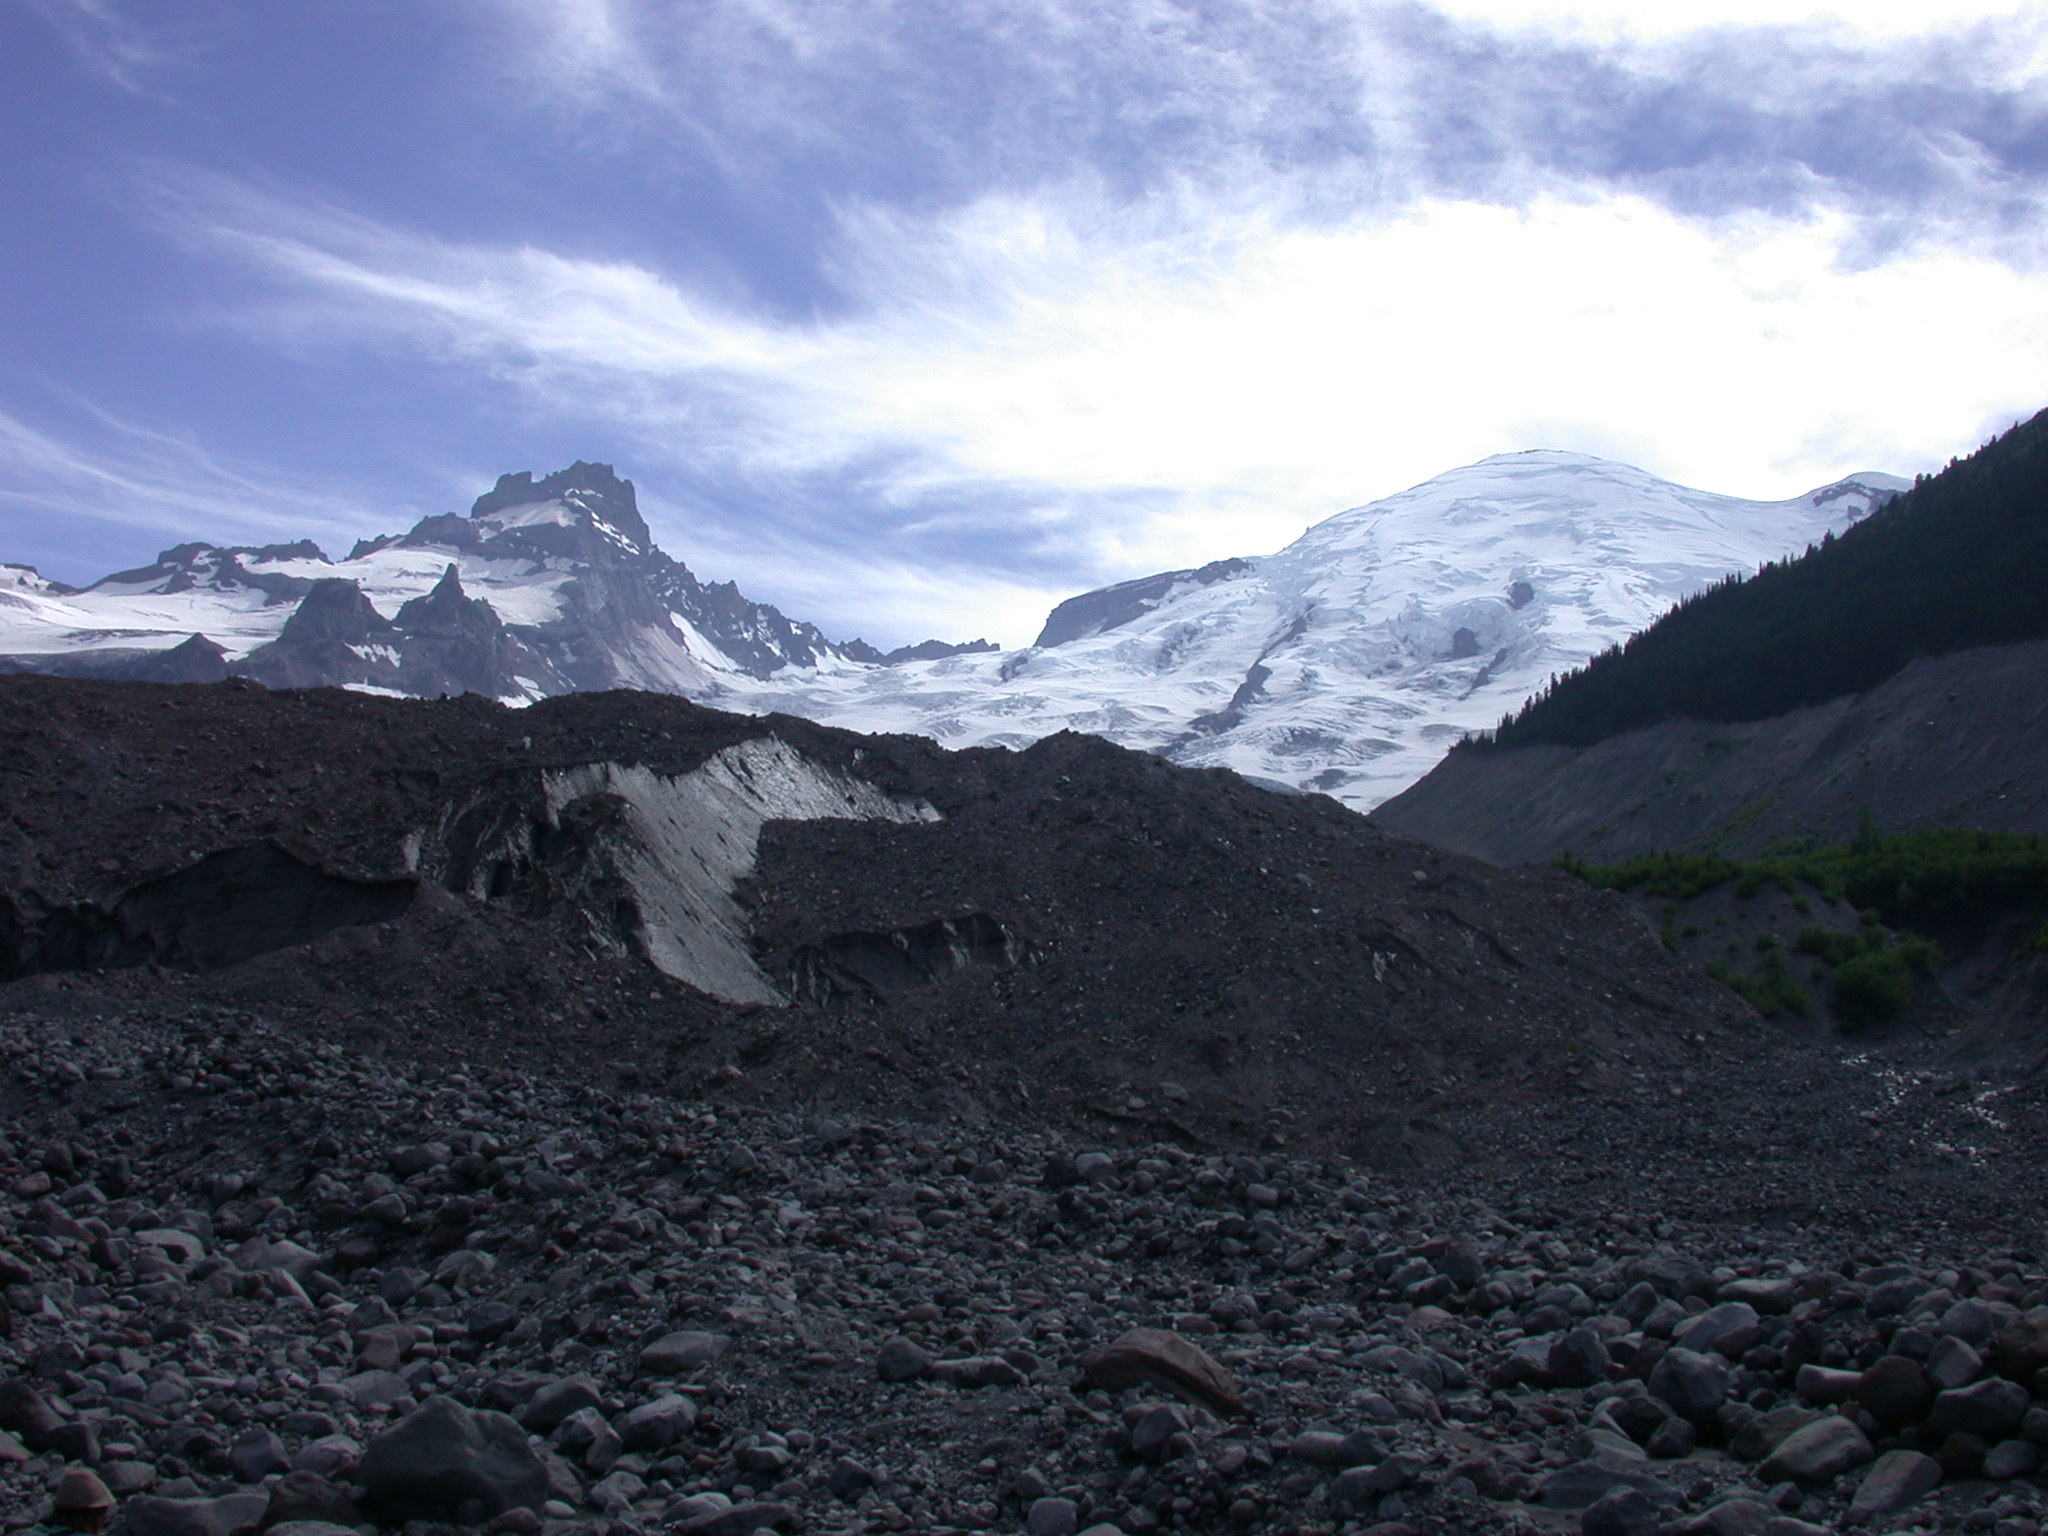 Dirty Part of Glacier With View of Mount Rainier Summit